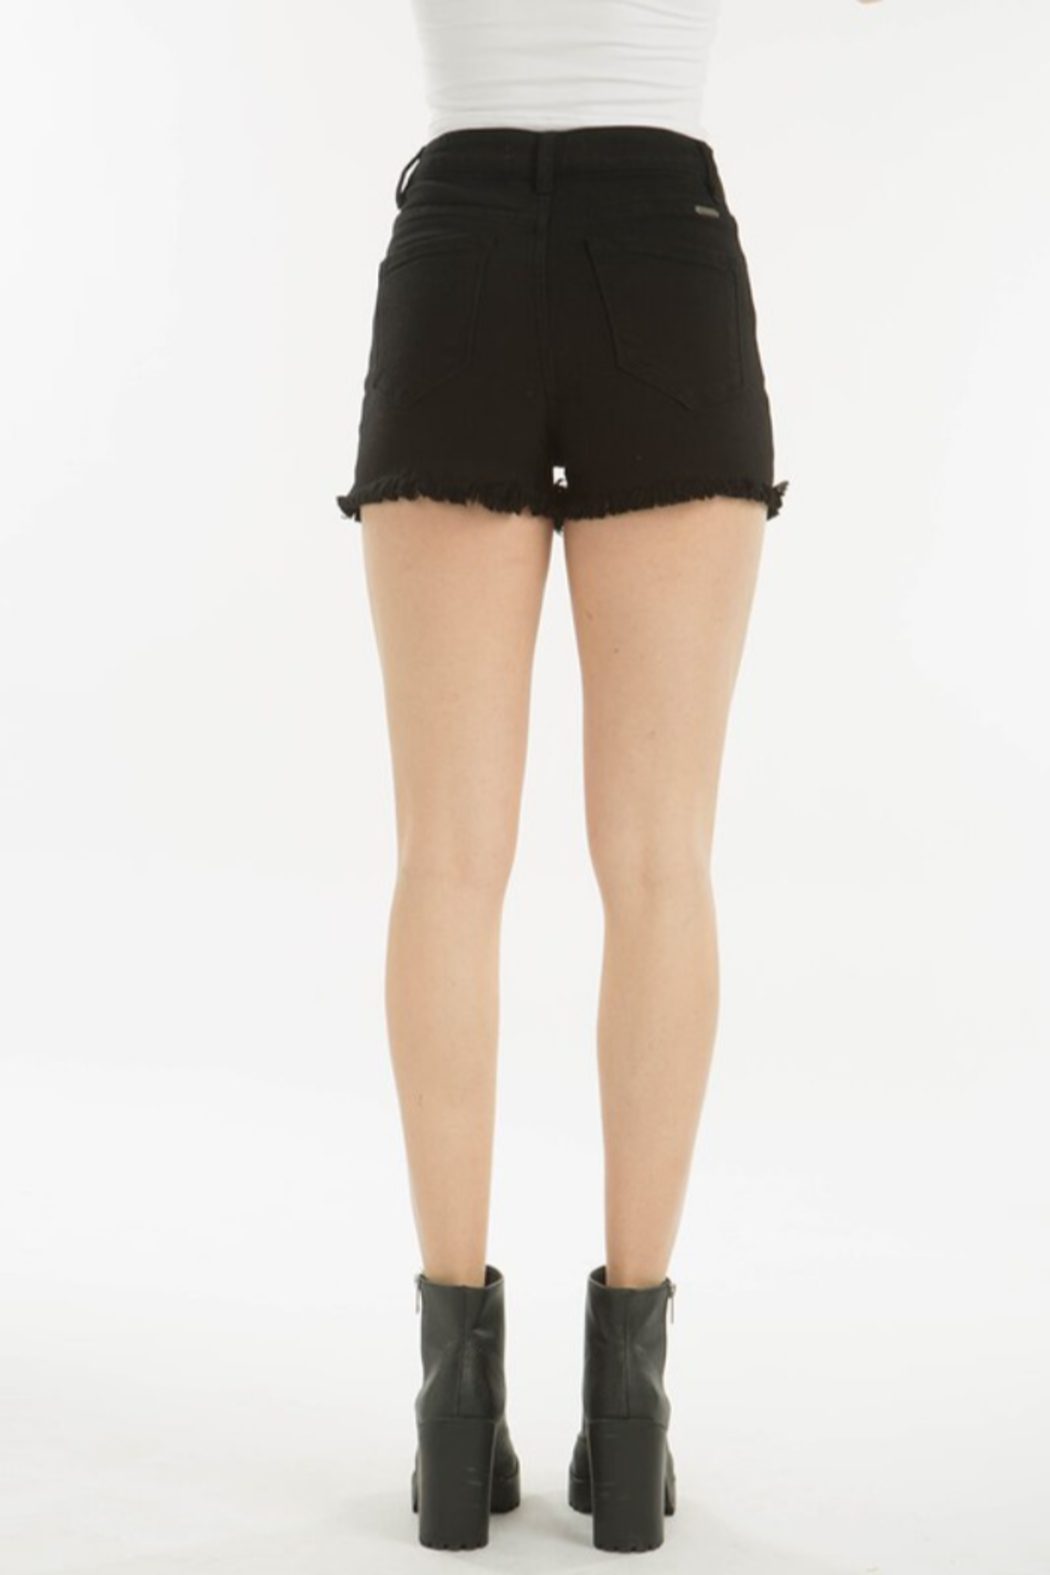 Kan Can DISTRESSED BLACK SHORT - Back Cropped Image